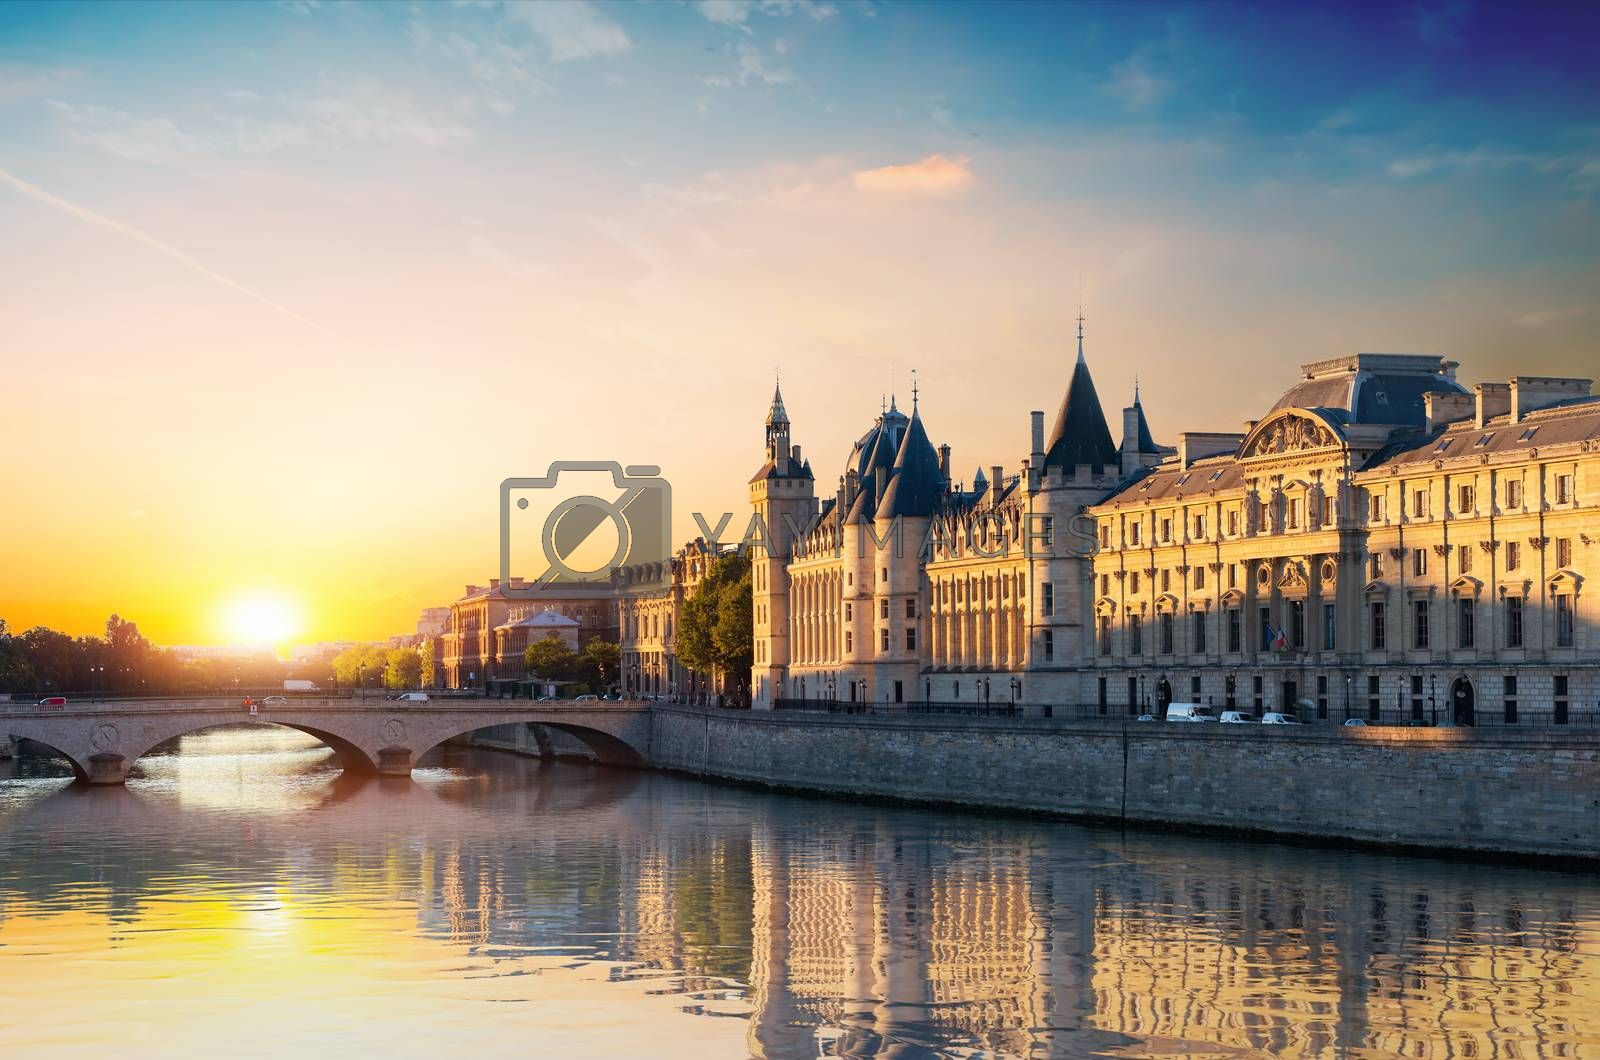 Court of Cassation on Seine in Paris, France